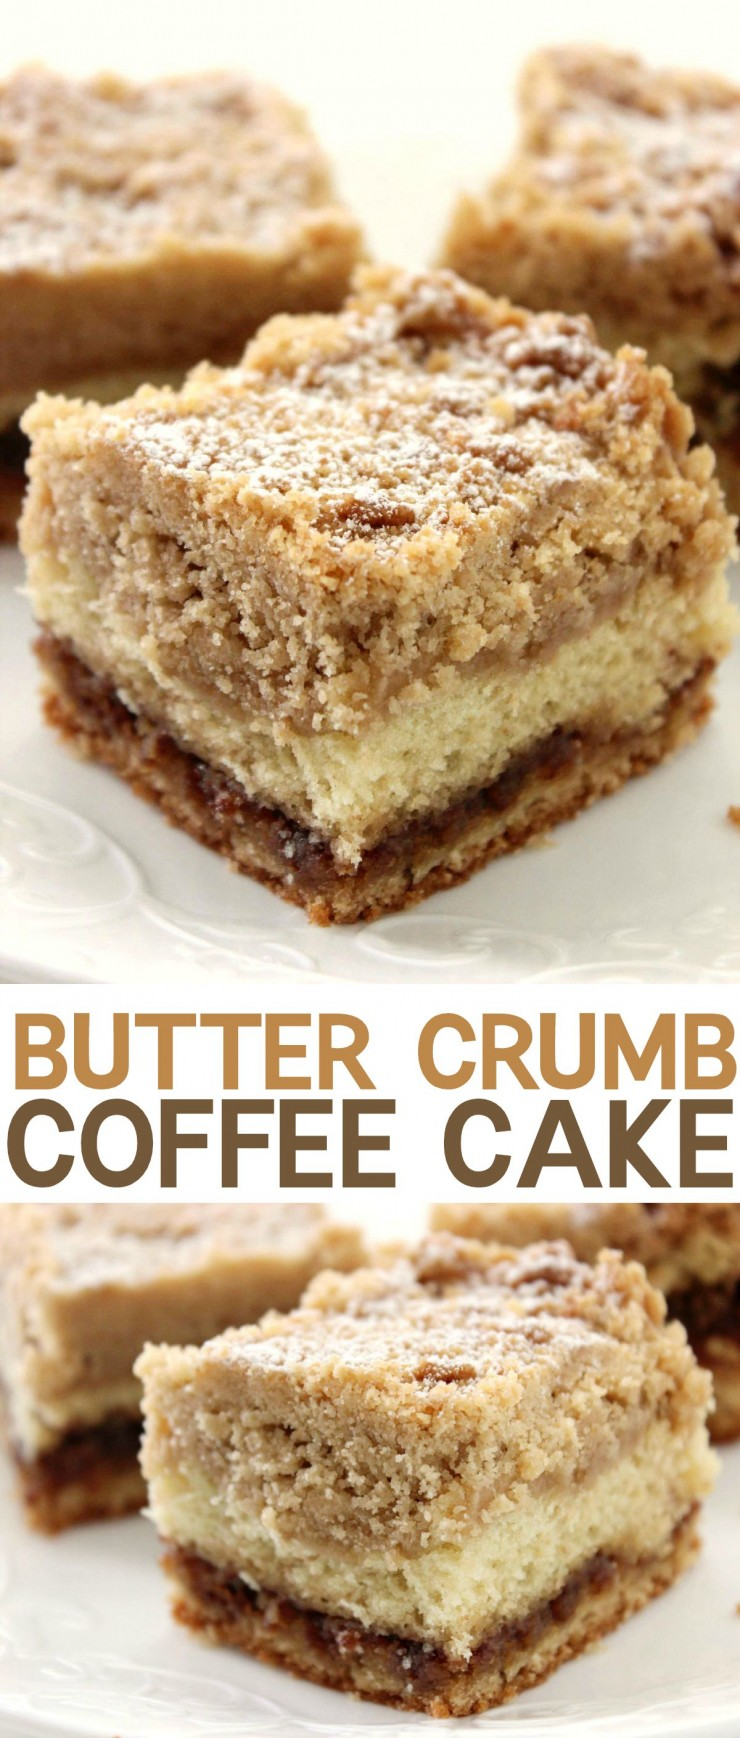 This Butter Crumb Coffee Cake is soft, fluffy, and tender with a generous crumb layer that is to die for.